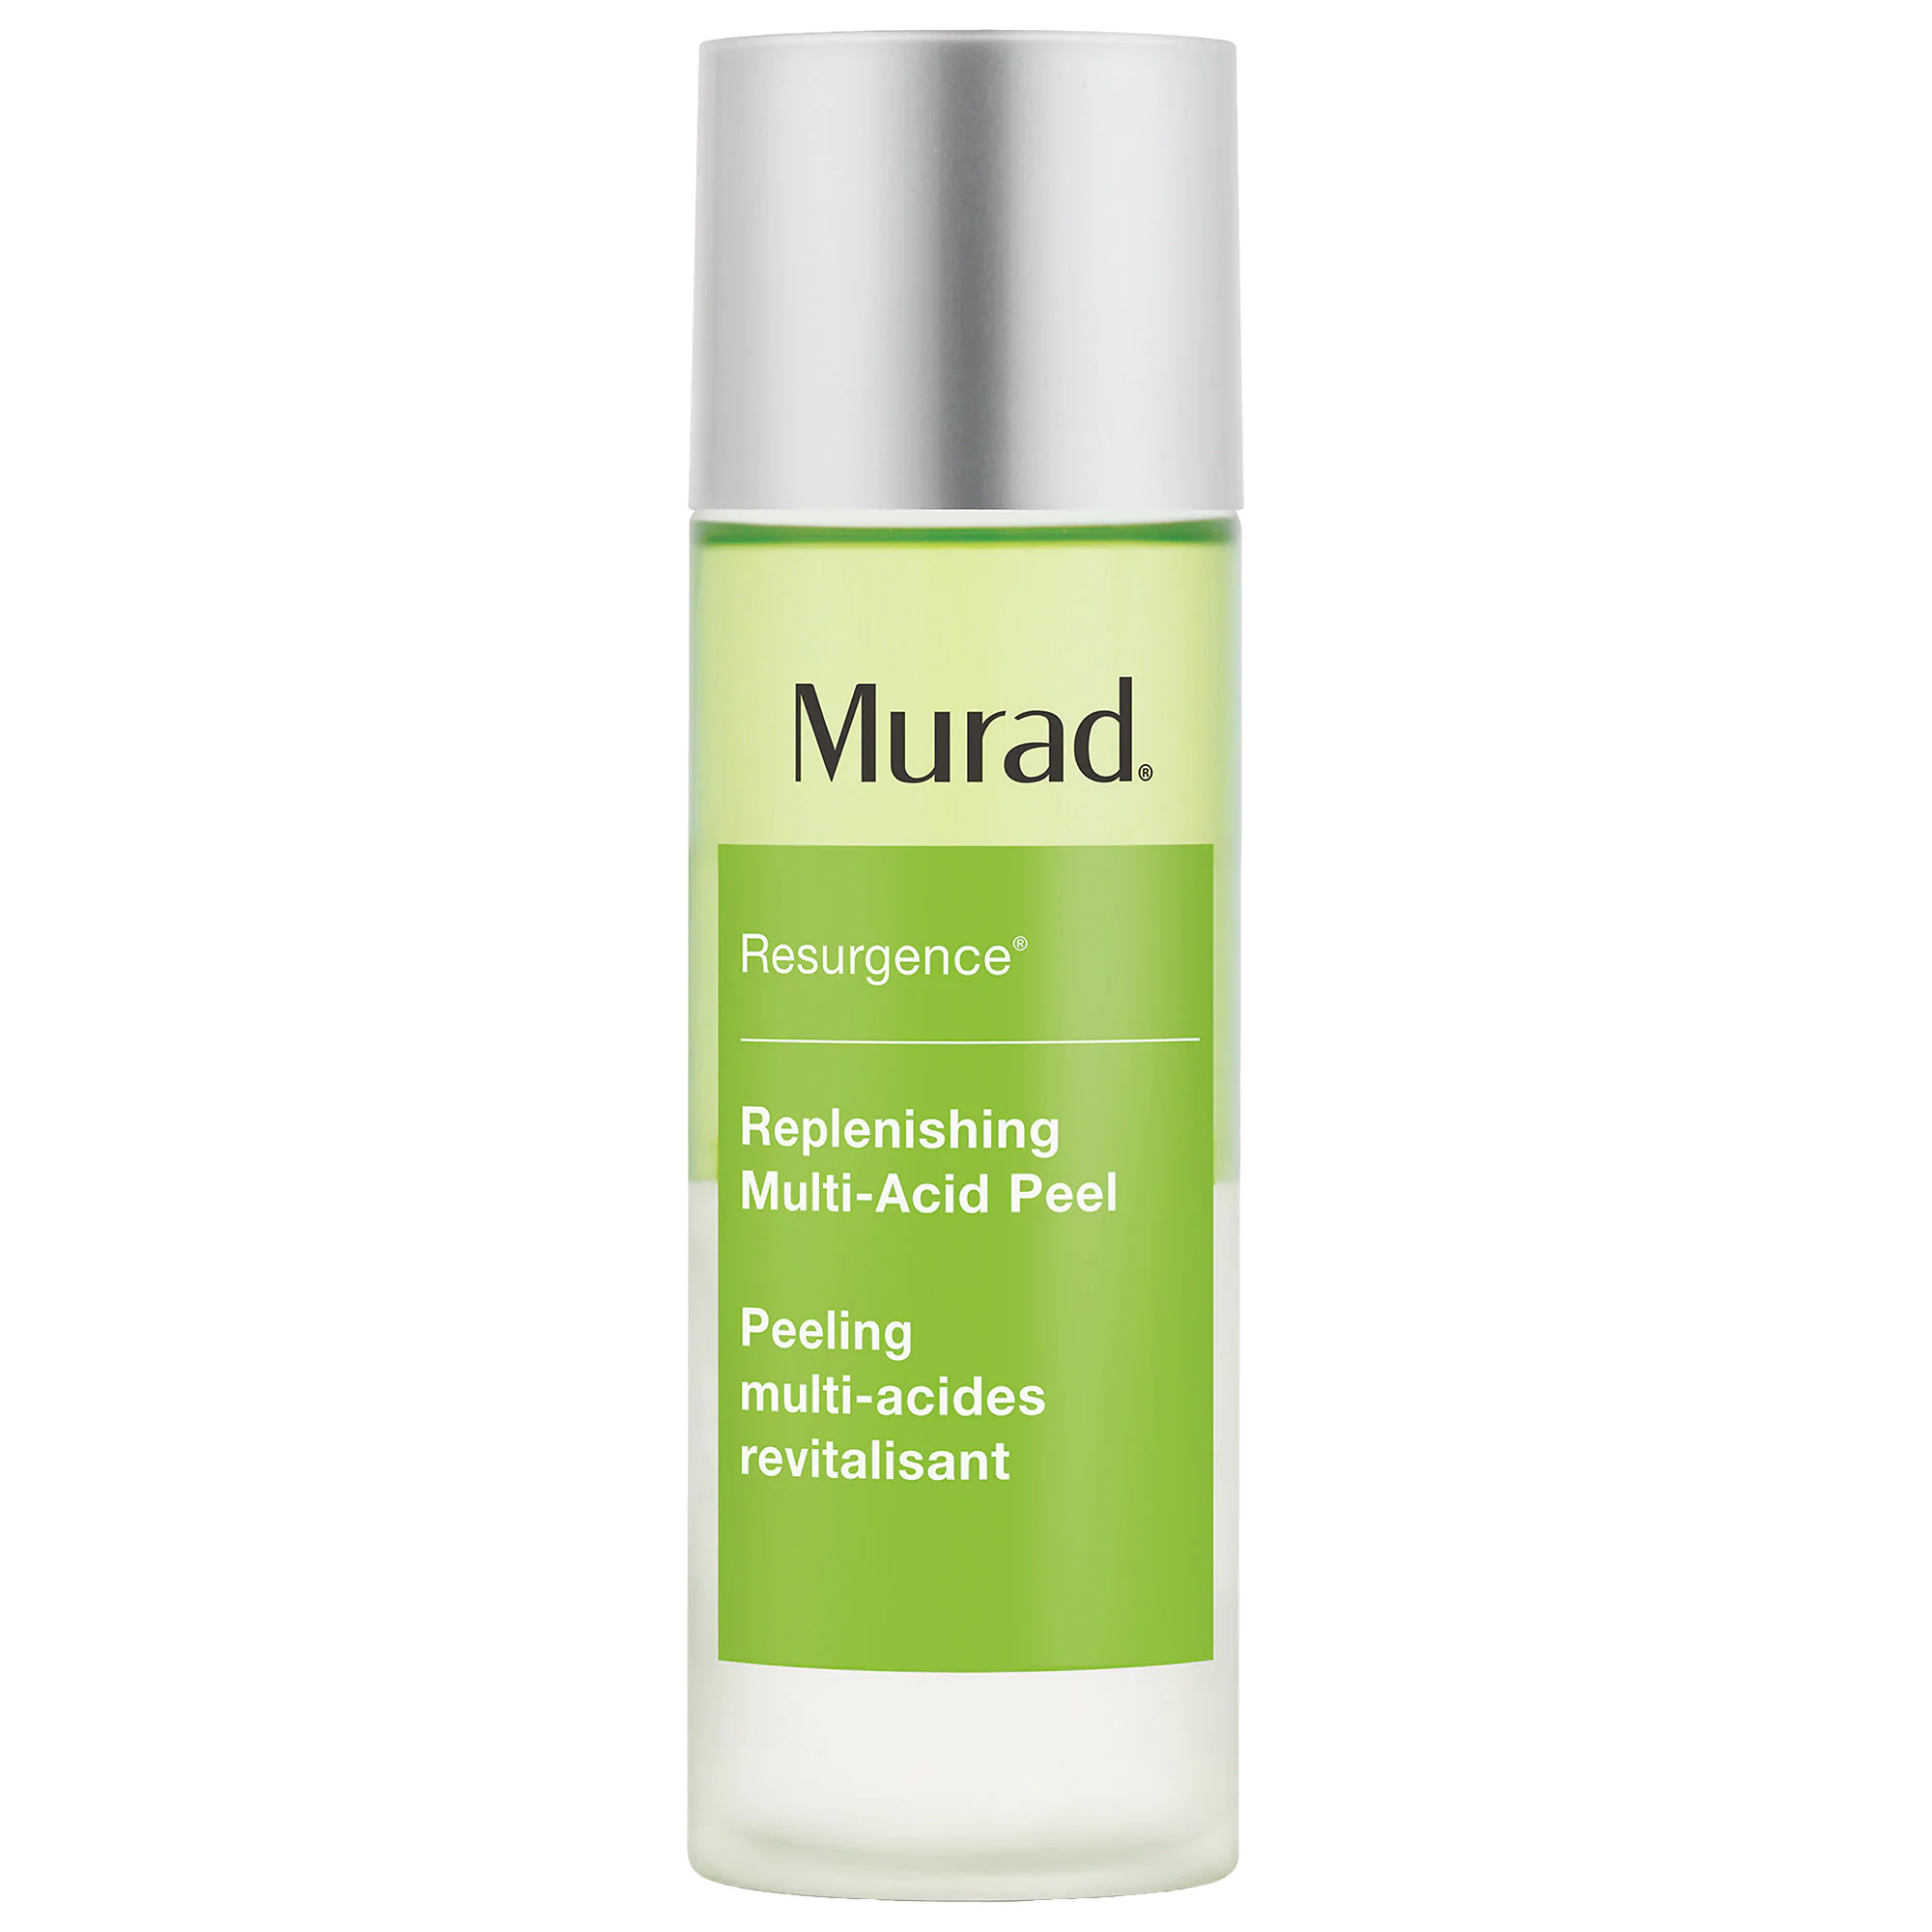 Murad-Replenishing Multi-Acid Peel